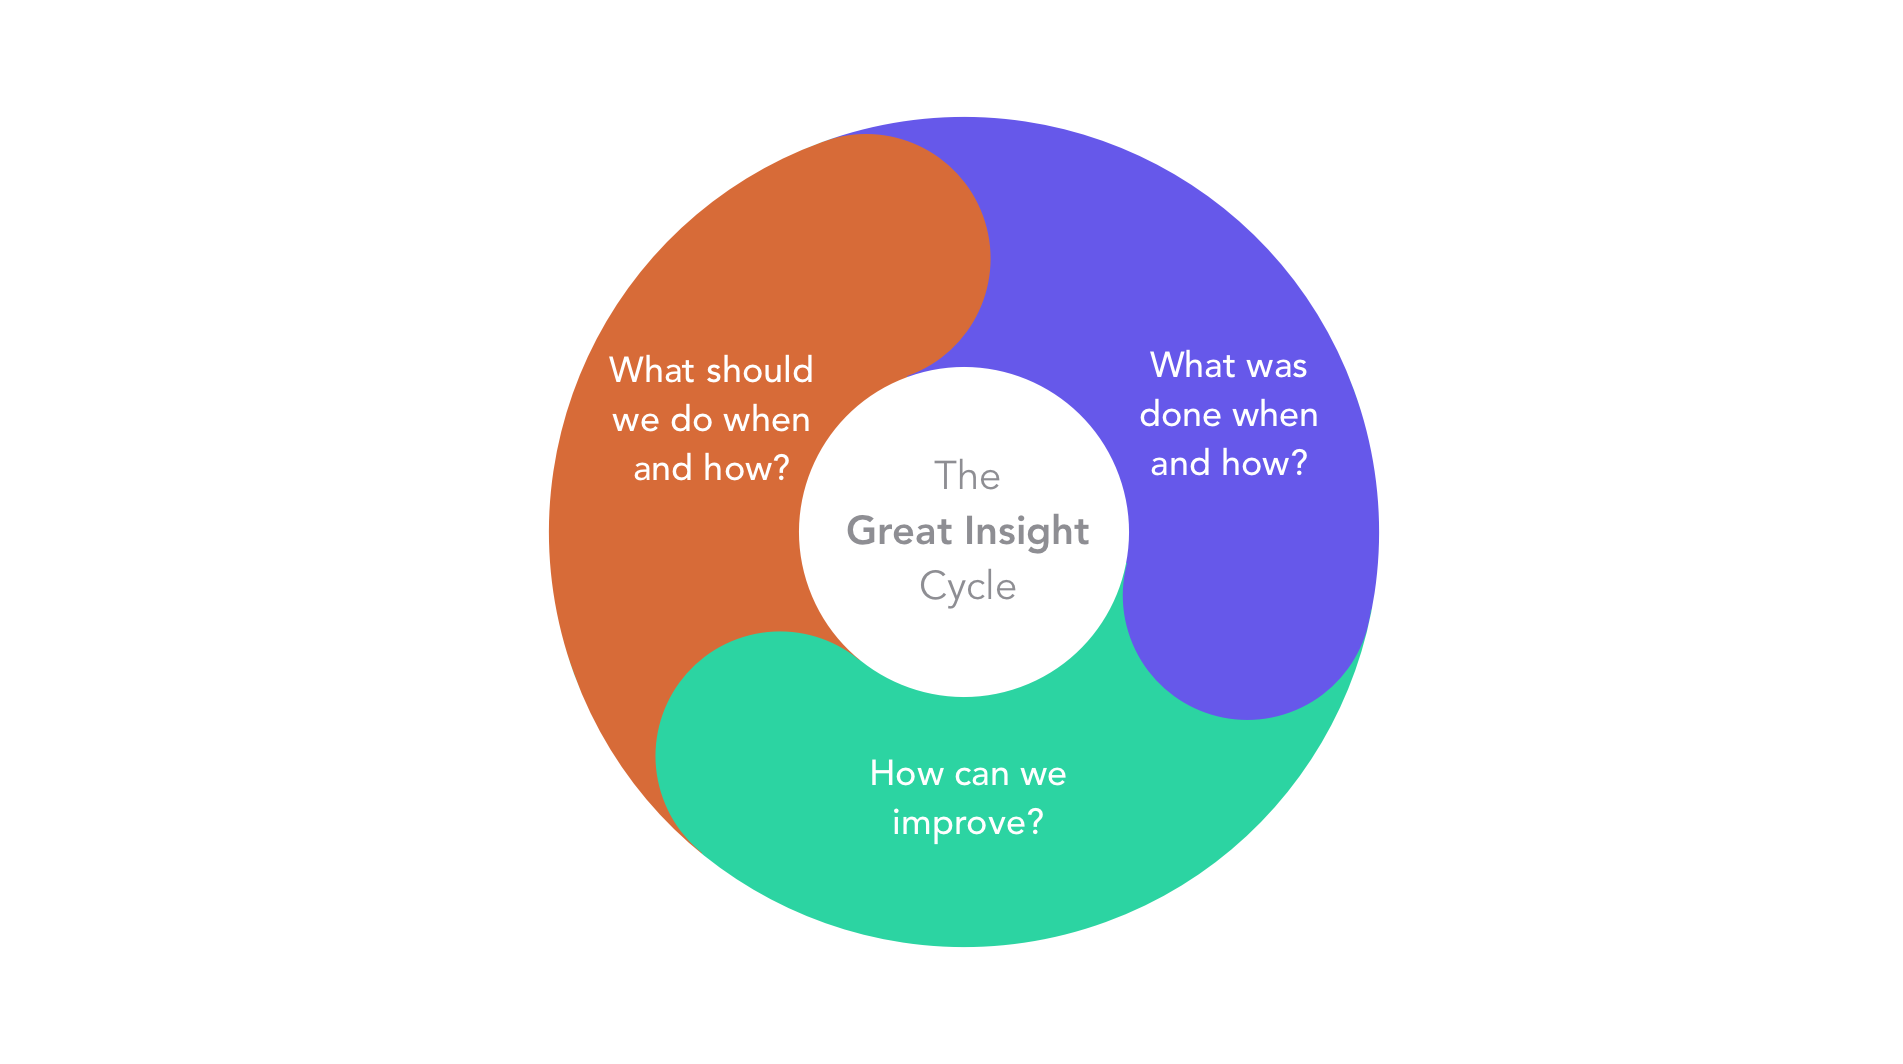 The Great Insight Cycle